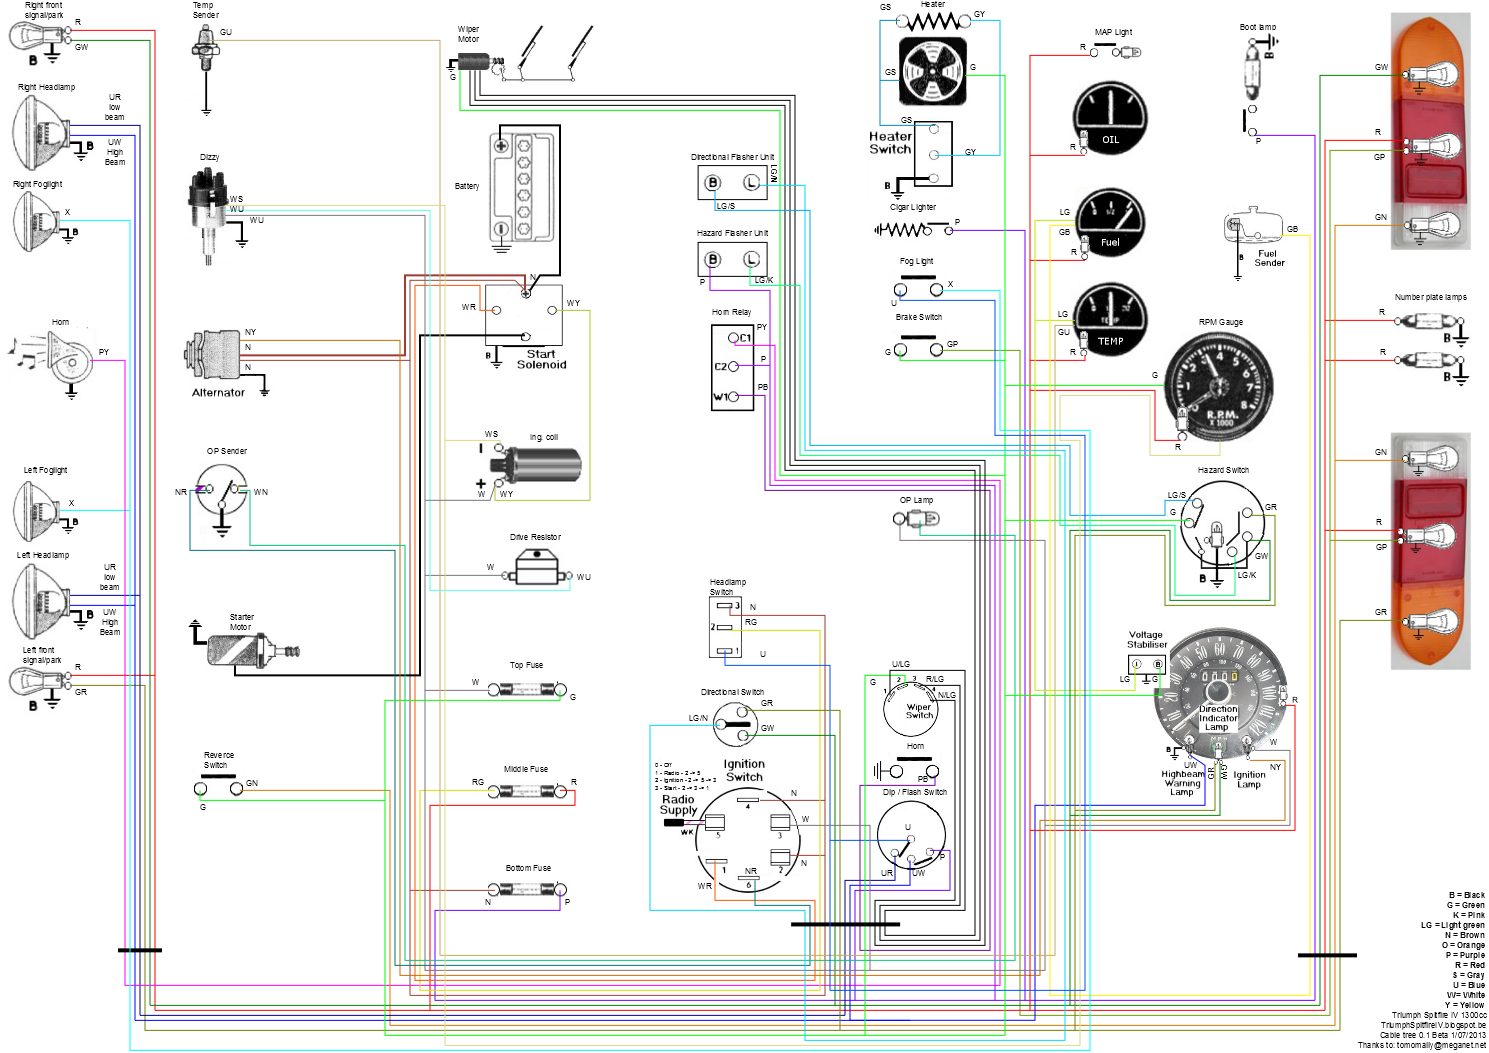 Schema triumph t120 wiring diagram wiring diagram simonand 2012 triumph bonneville wiring diagram at suagrazia.org